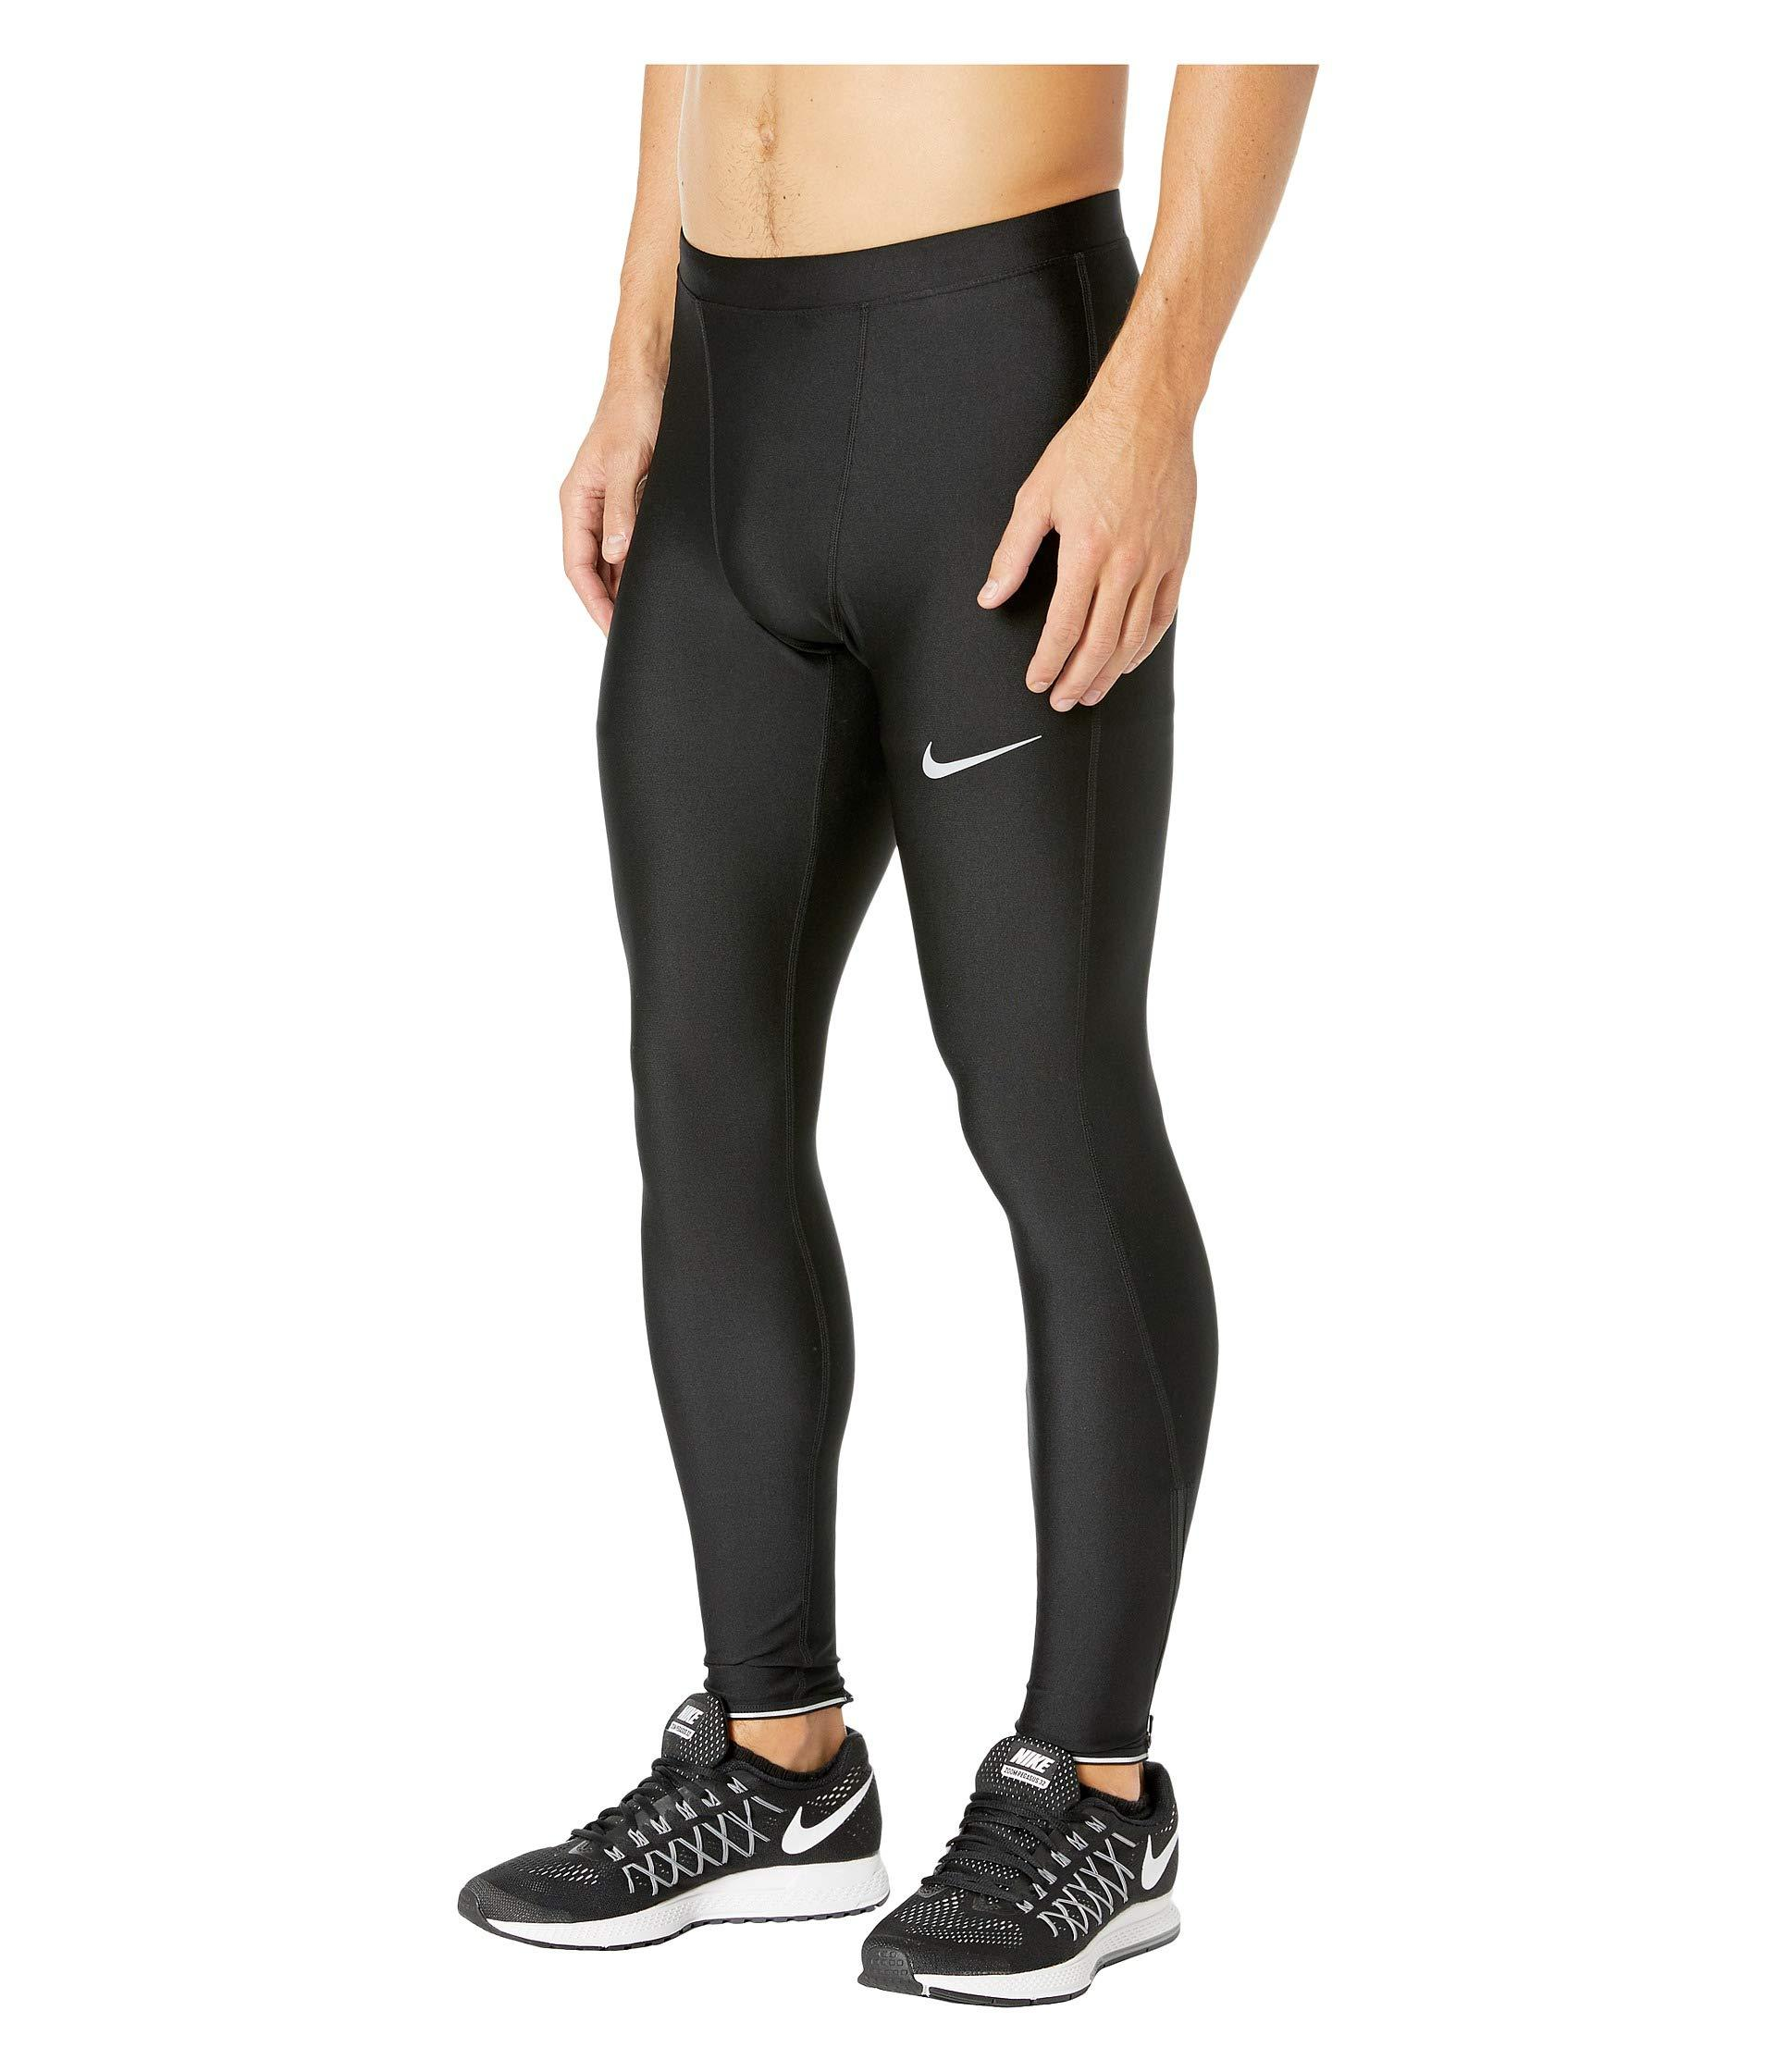 ab3787b9caec1 Nike Run Mobility Tights (black/reflective Silver) Men's Workout in ...